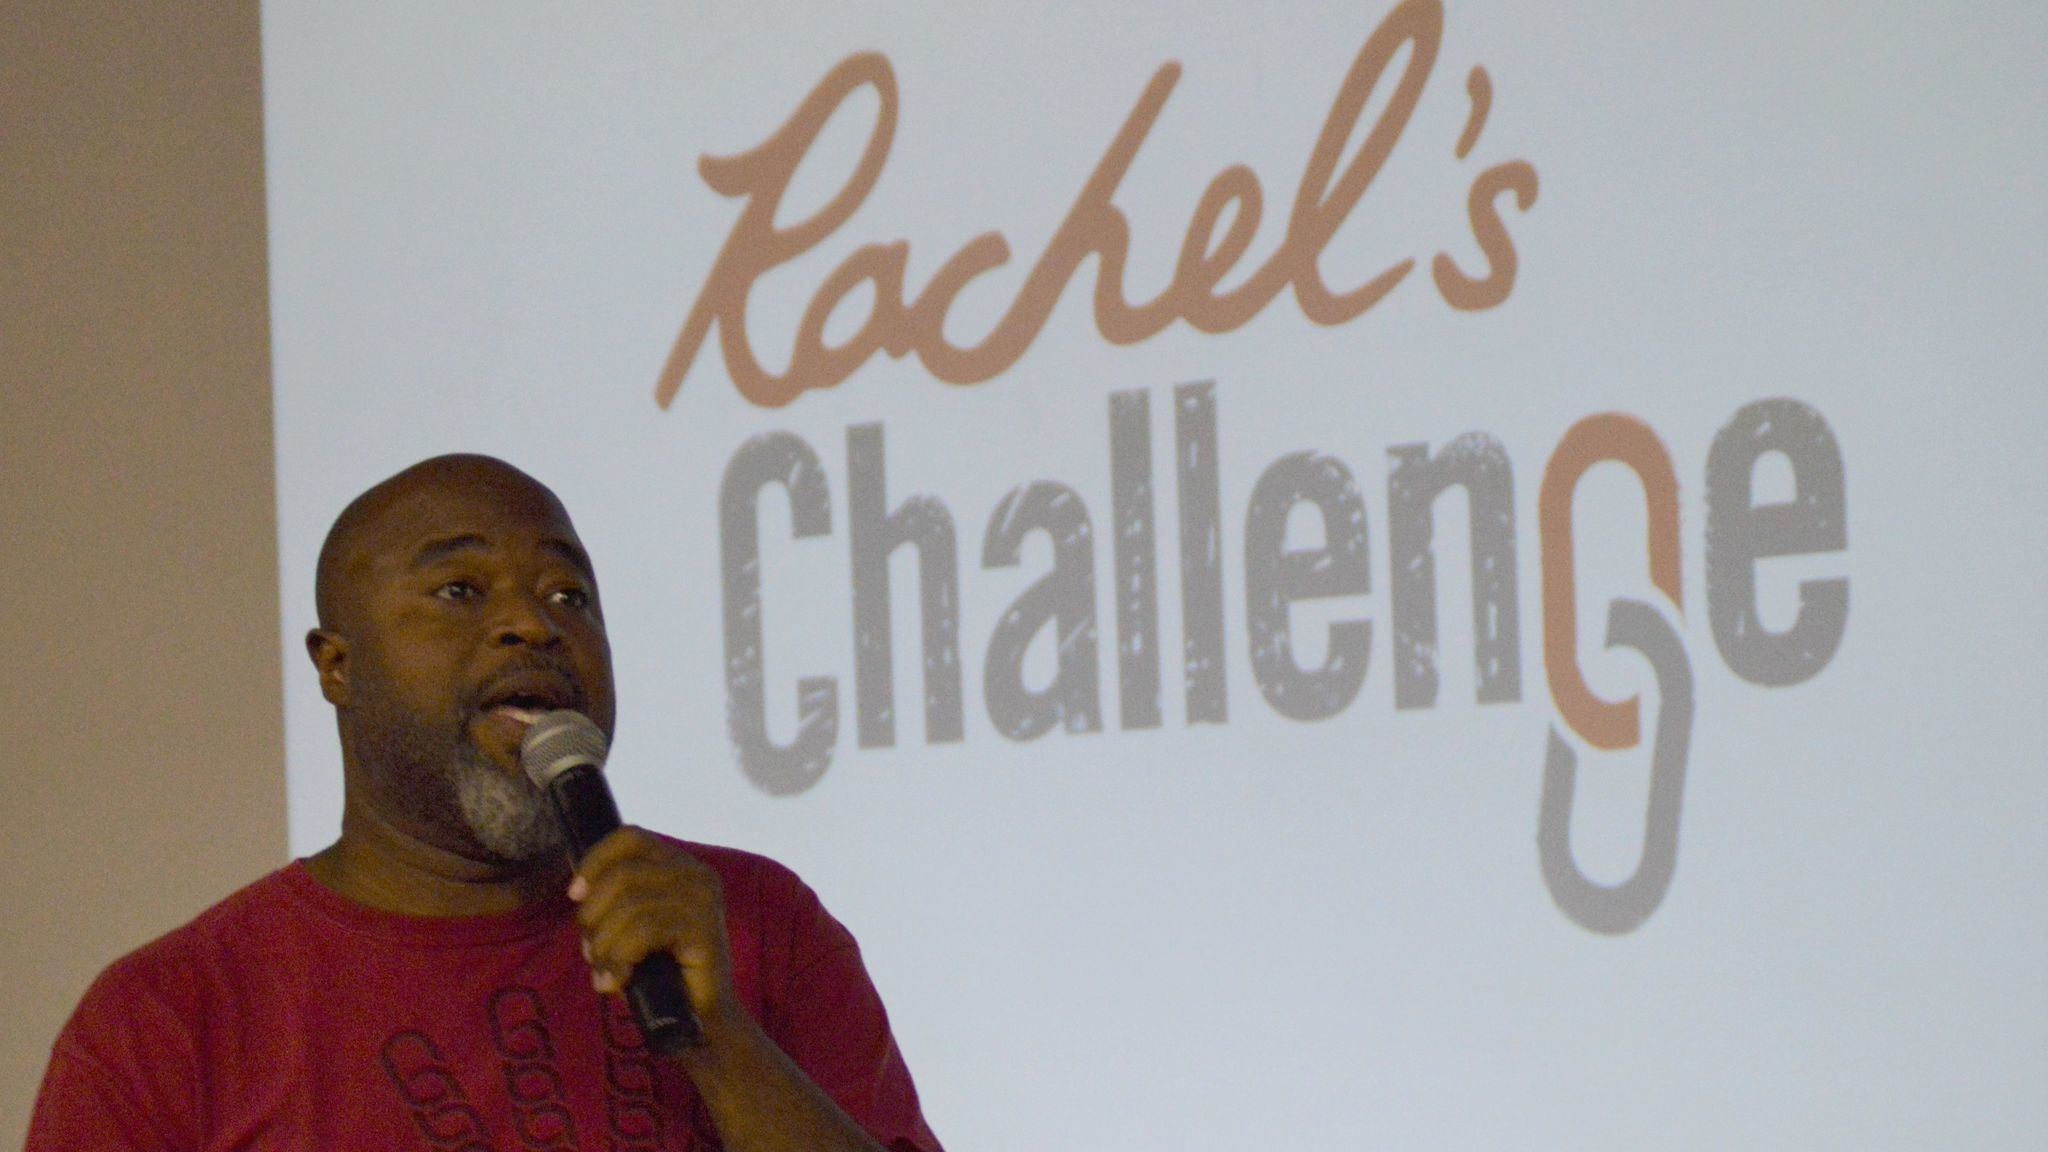 Fred Lynch presents the Rachel's Challenge program at one of two assemblies held in Ramona High School last Wednesday.